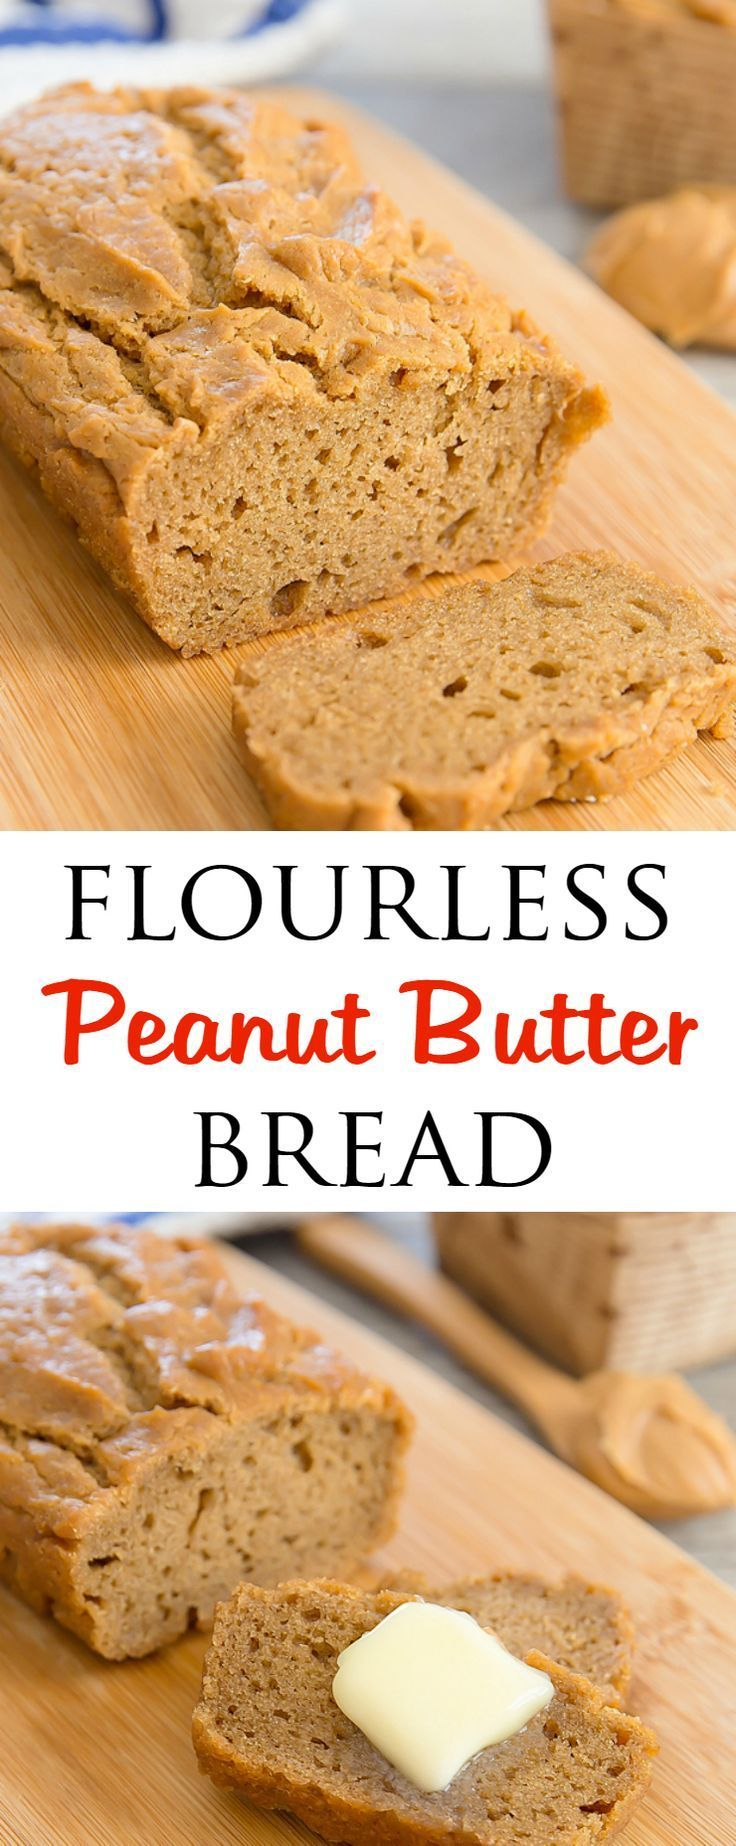 Flourless Peanut Butter Bread. Easy, low carb, gluten free. Holds together well for sandwiches and toast.